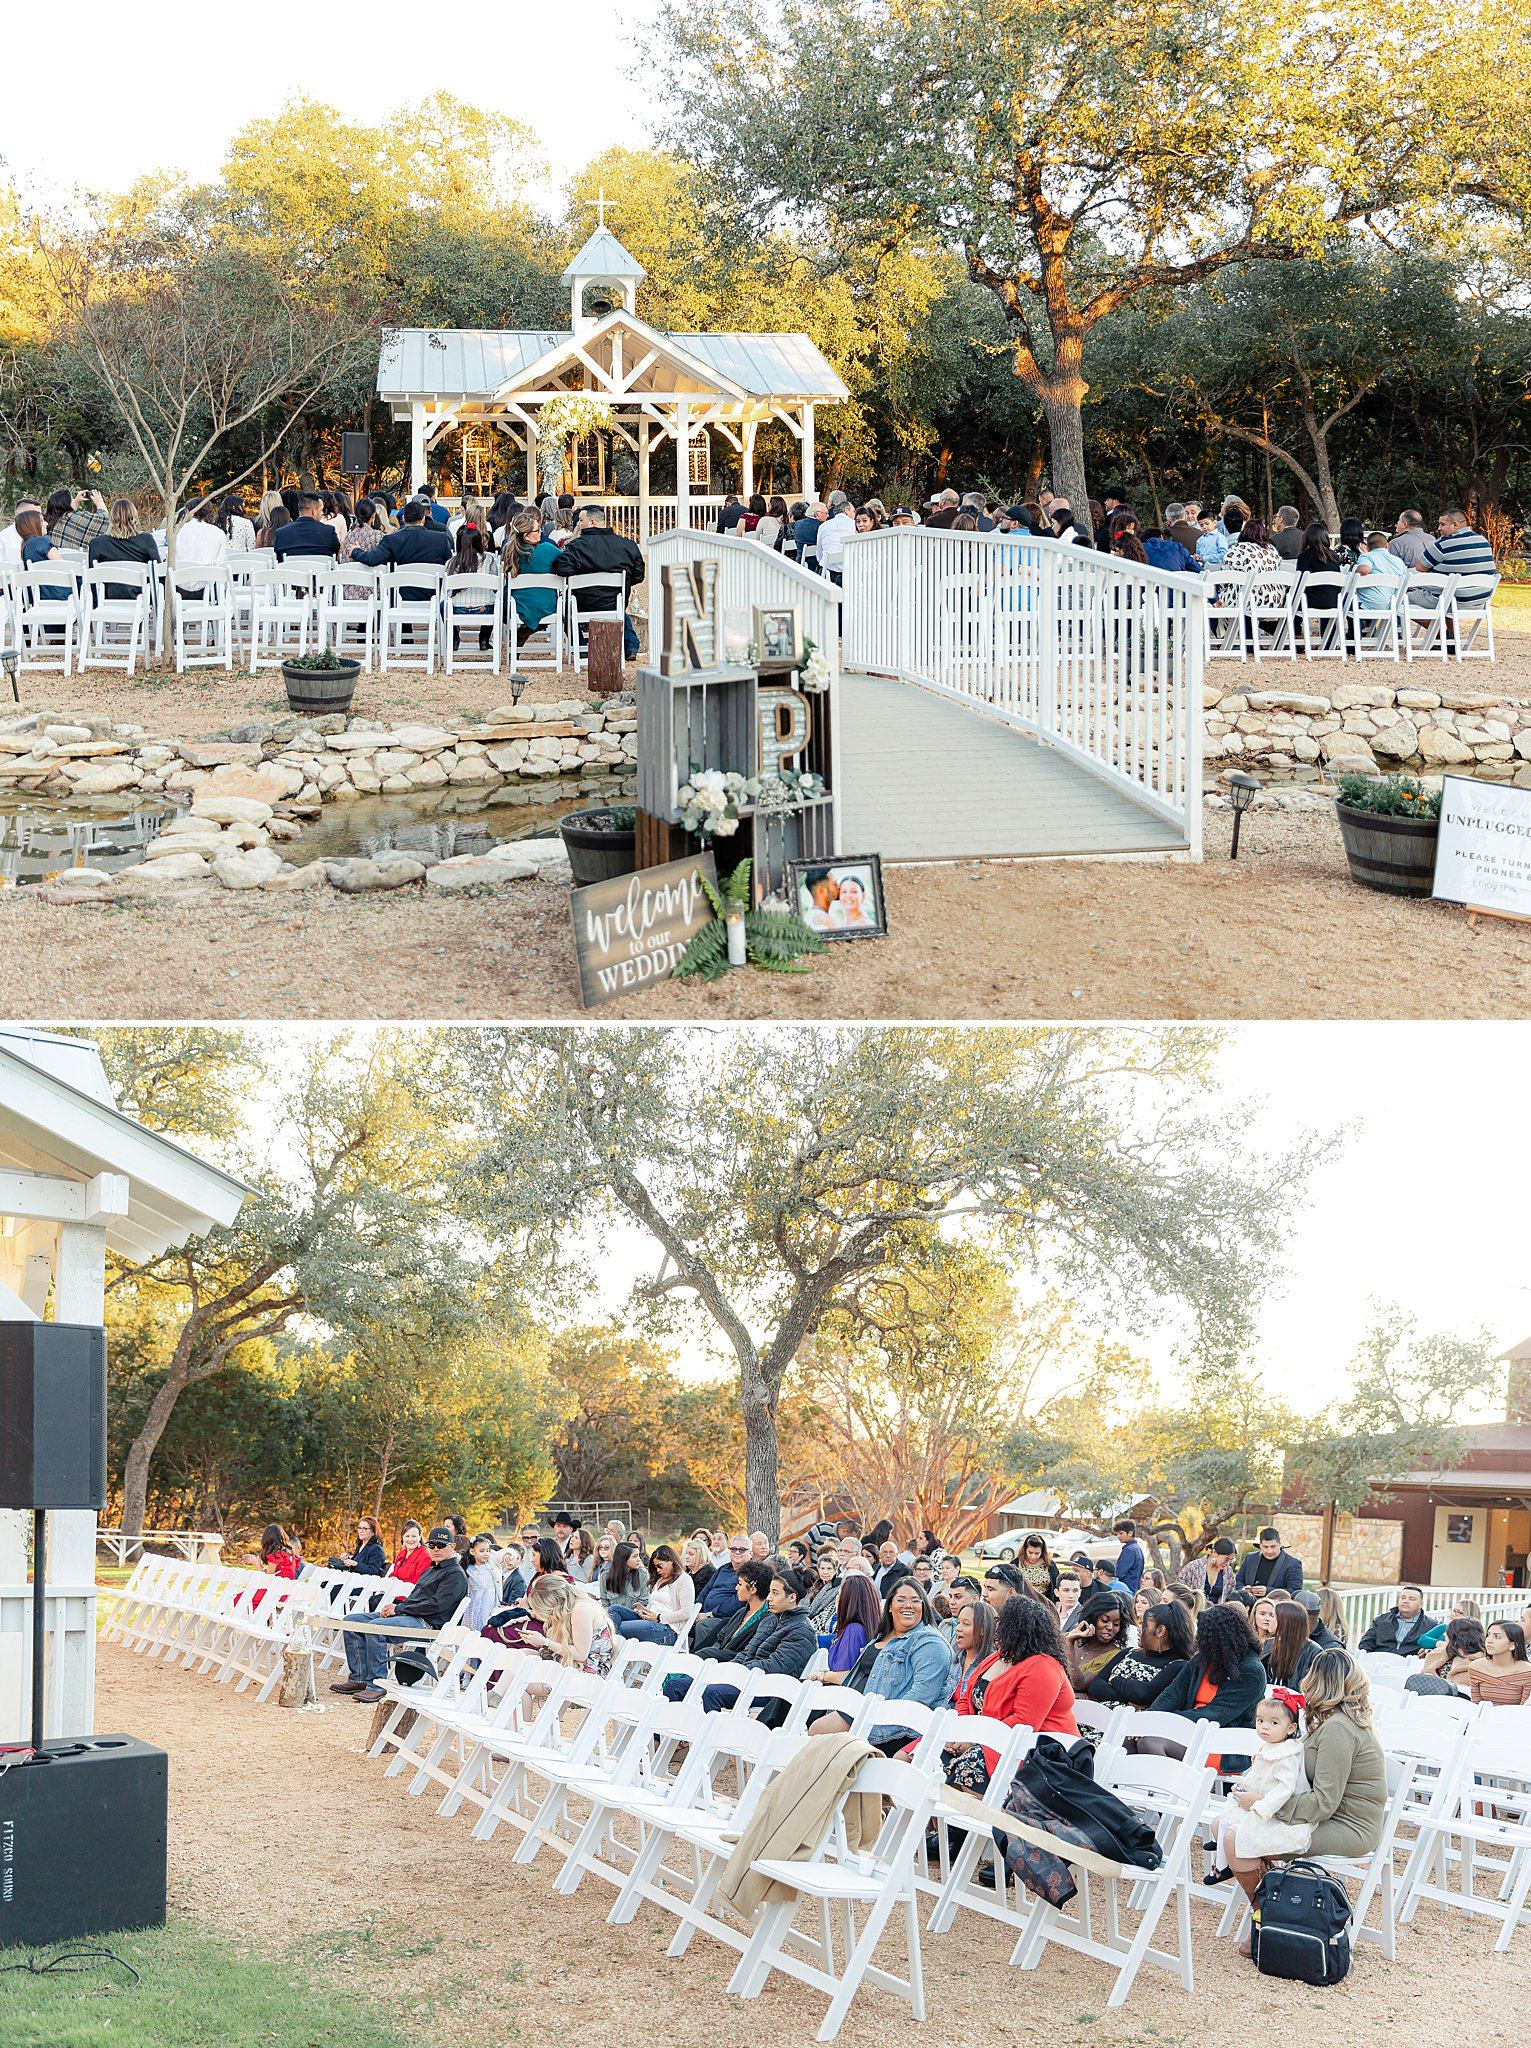 Carly-Barton-Photography-Texas-Wedding-Photographer-Western-Sky-Wedding-Event-Venue-Emerald-Green-Theme_0020.jpg